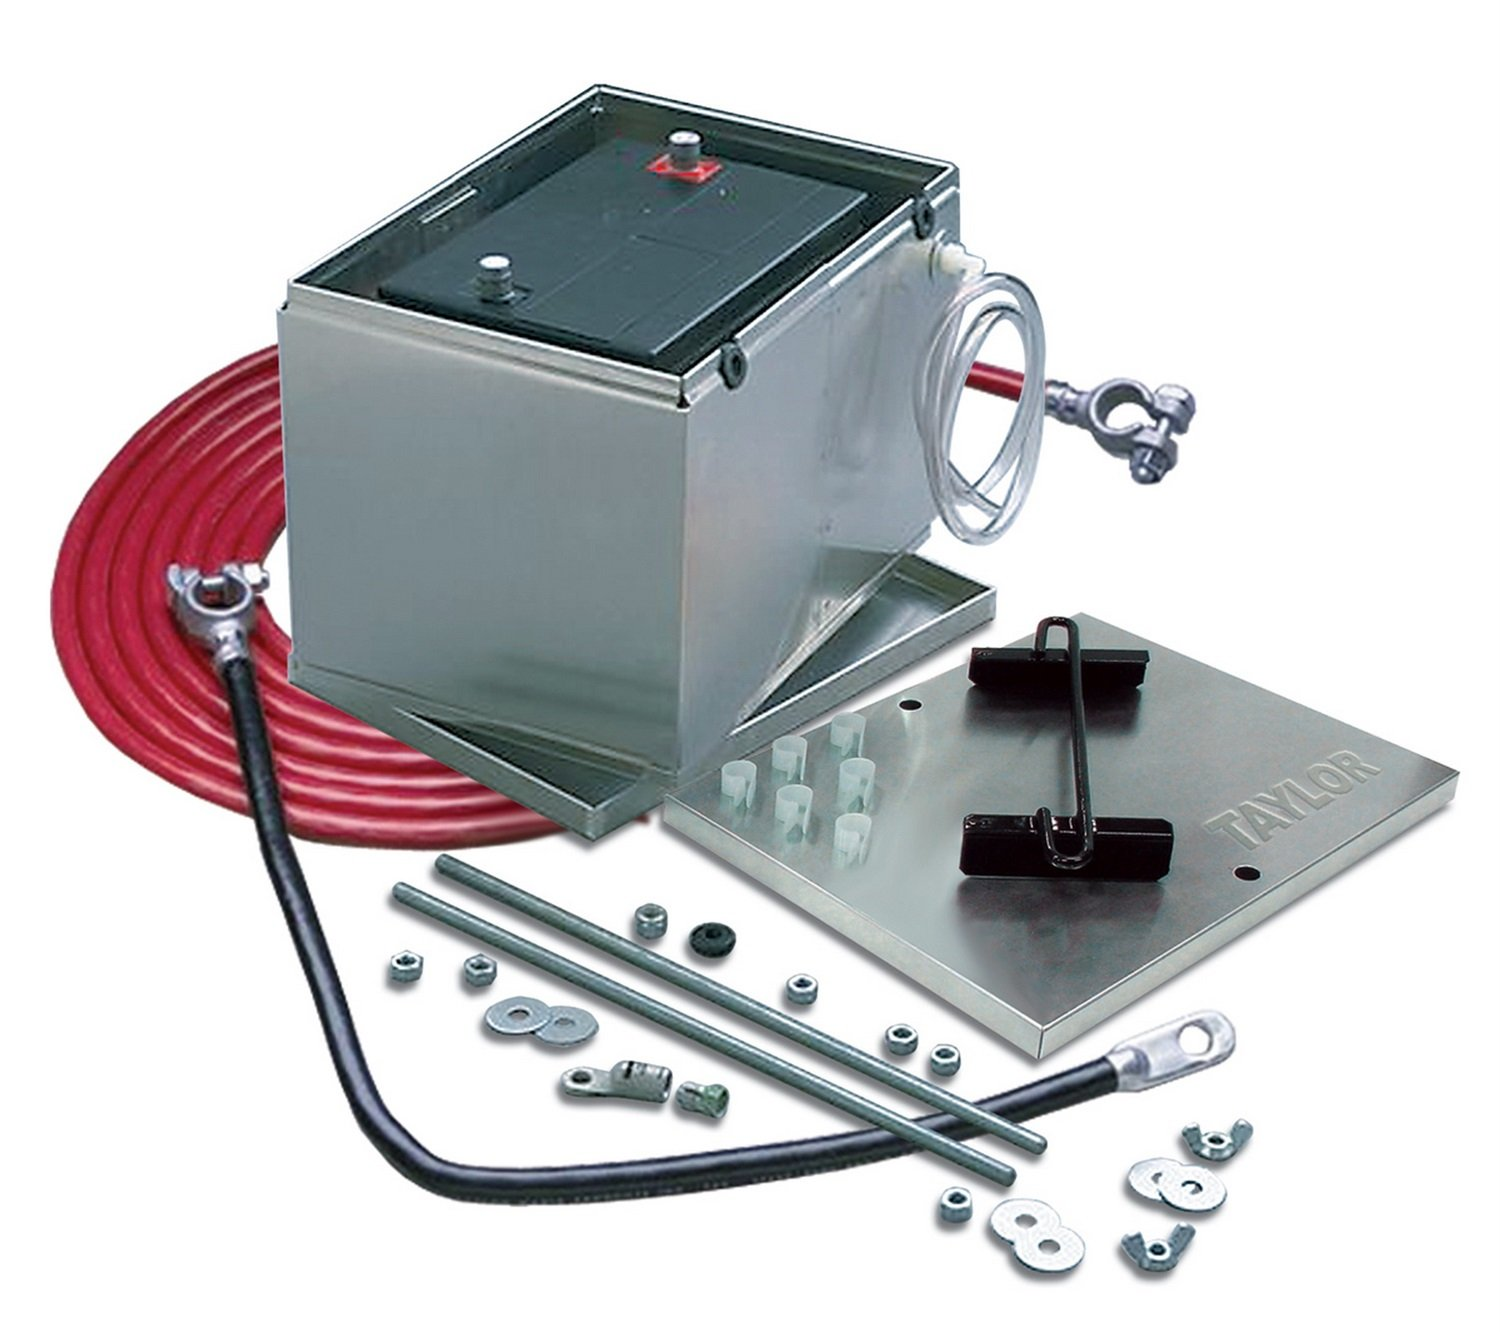 Taylor Cable 48104 Aluminum Battery Box with 1-Gauge Welding Cable Kit by Taylor Cable